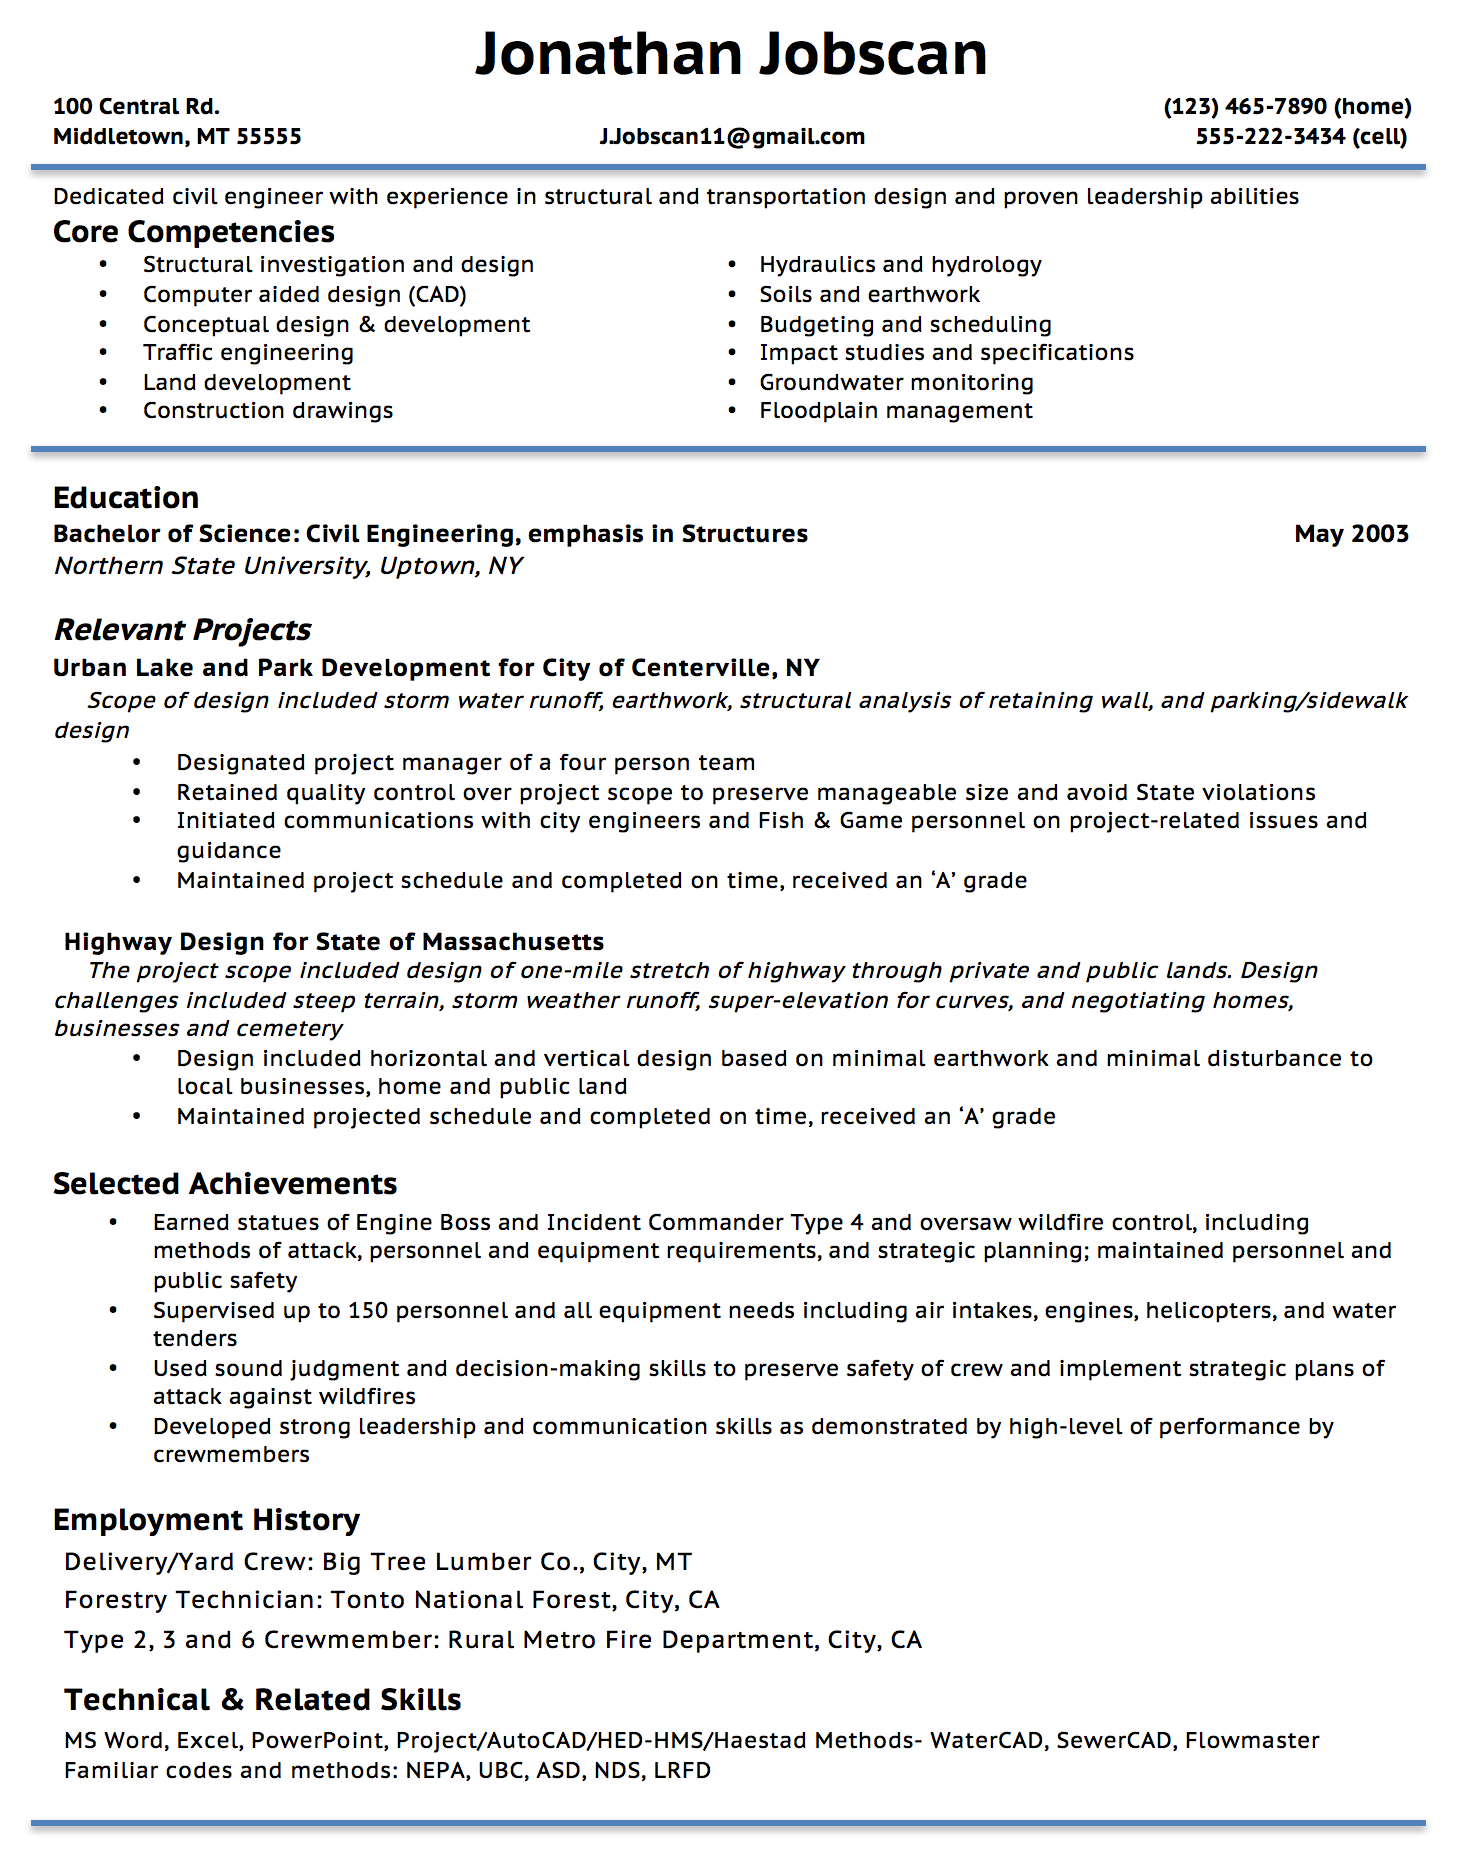 Picnictoimpeachus  Gorgeous Resume Writing Guide  Jobscan With Hot Example Of A Functional Resume Format With Alluring Sending Resume Email Also Resume Exaples In Addition Online Resume Service And Counselor Resume As Well As Examples Of Skills On Resume Additionally Resume Tips For College Students From Jobscanco With Picnictoimpeachus  Hot Resume Writing Guide  Jobscan With Alluring Example Of A Functional Resume Format And Gorgeous Sending Resume Email Also Resume Exaples In Addition Online Resume Service From Jobscanco